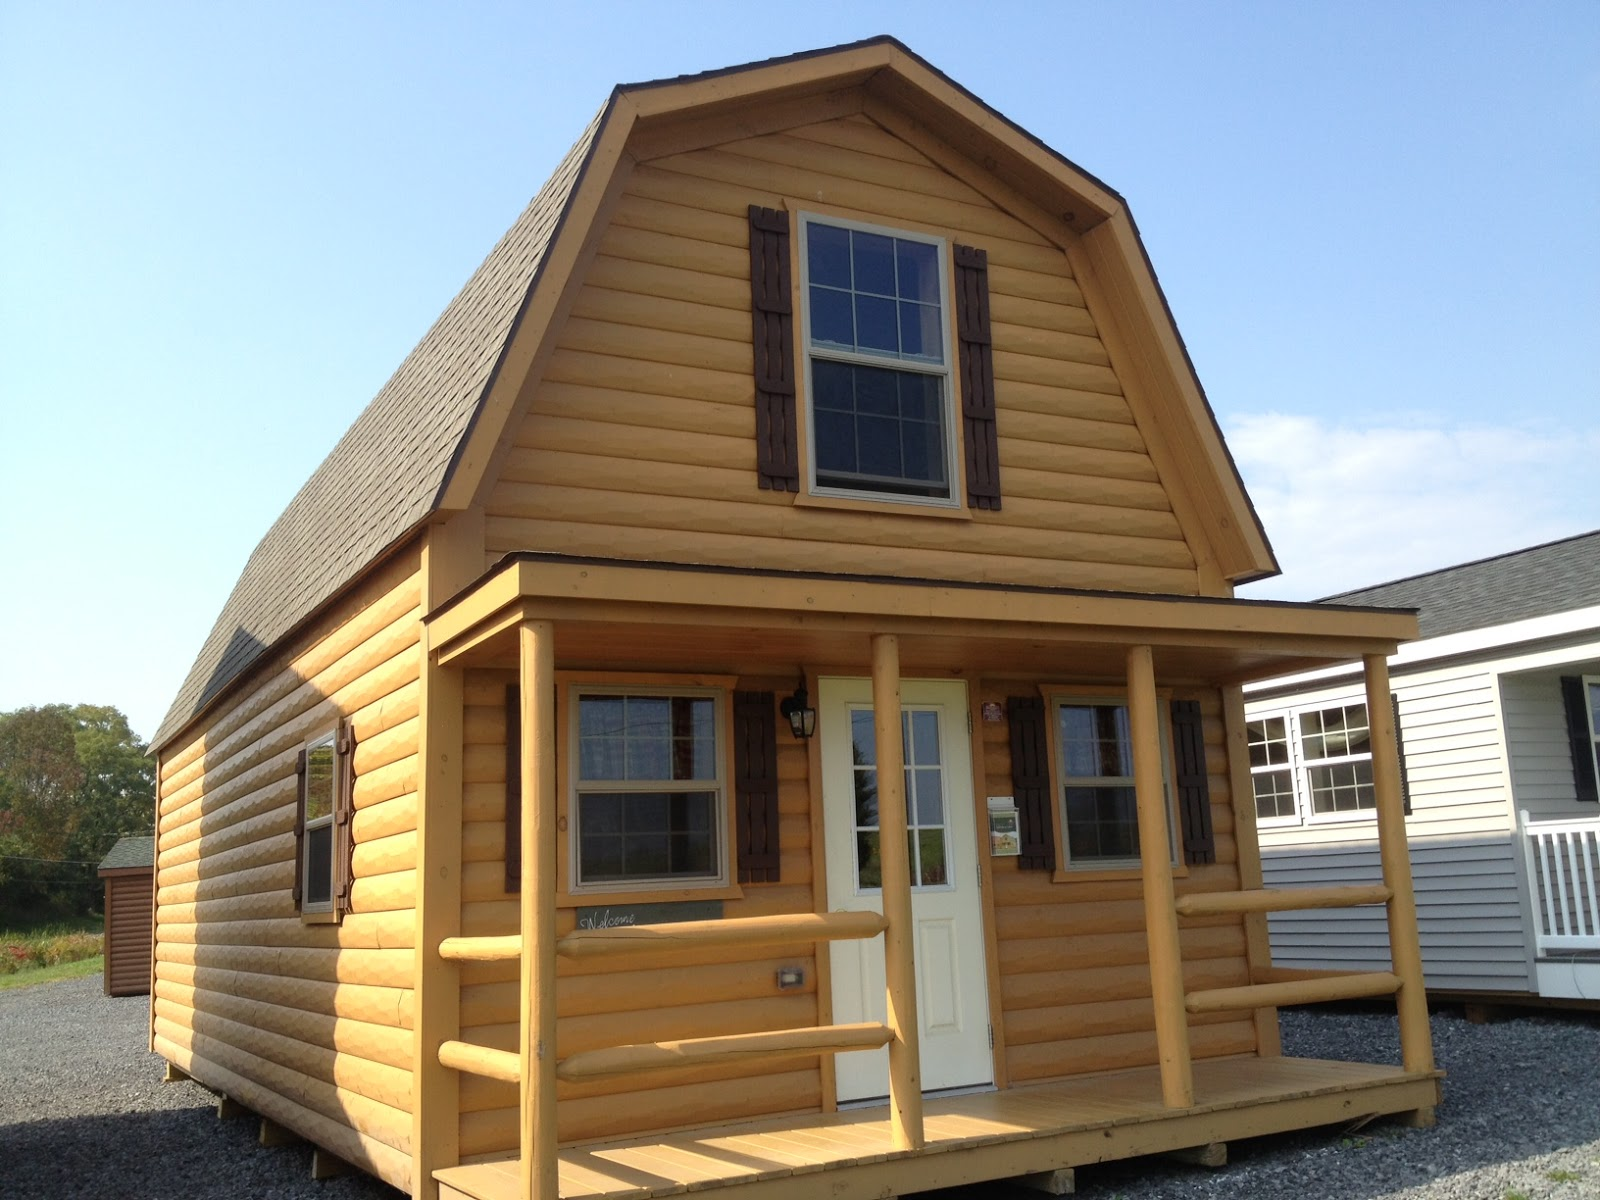 Small Scale Homes: Wood-Tex 768 Square Foot Prefab. Cabin